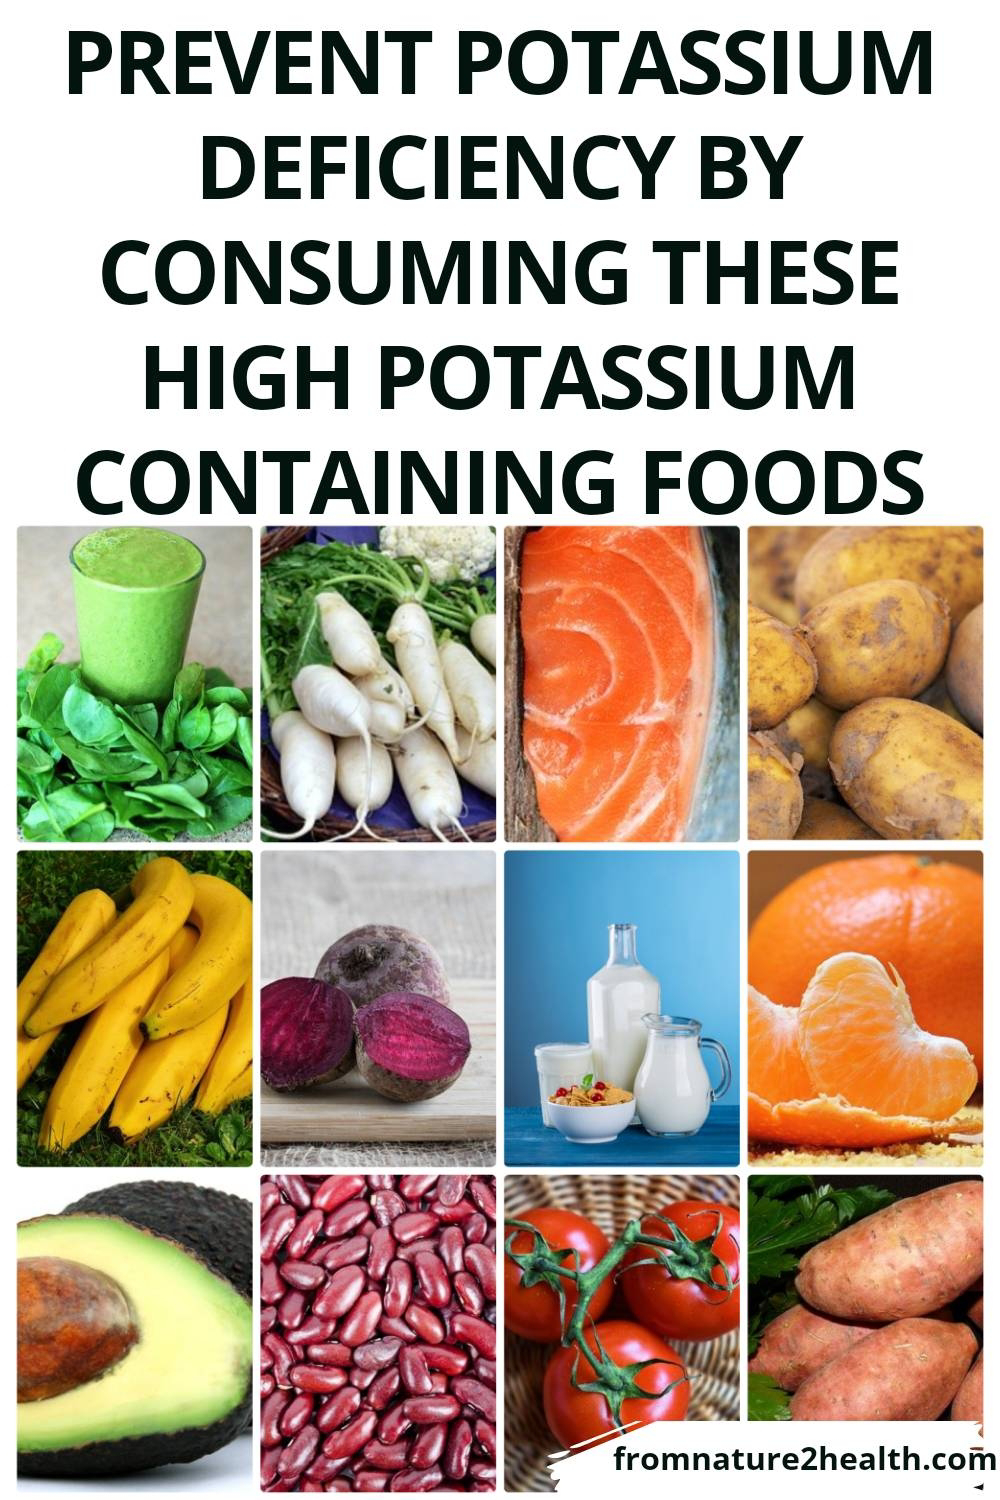 Potatoes, Sweet Potatoes, Avocado, Seafood, Red Beans, Radishes, Tomatoes, Spinach, Beet, Orange, Banana, Milk are High Potassium Containing Foods